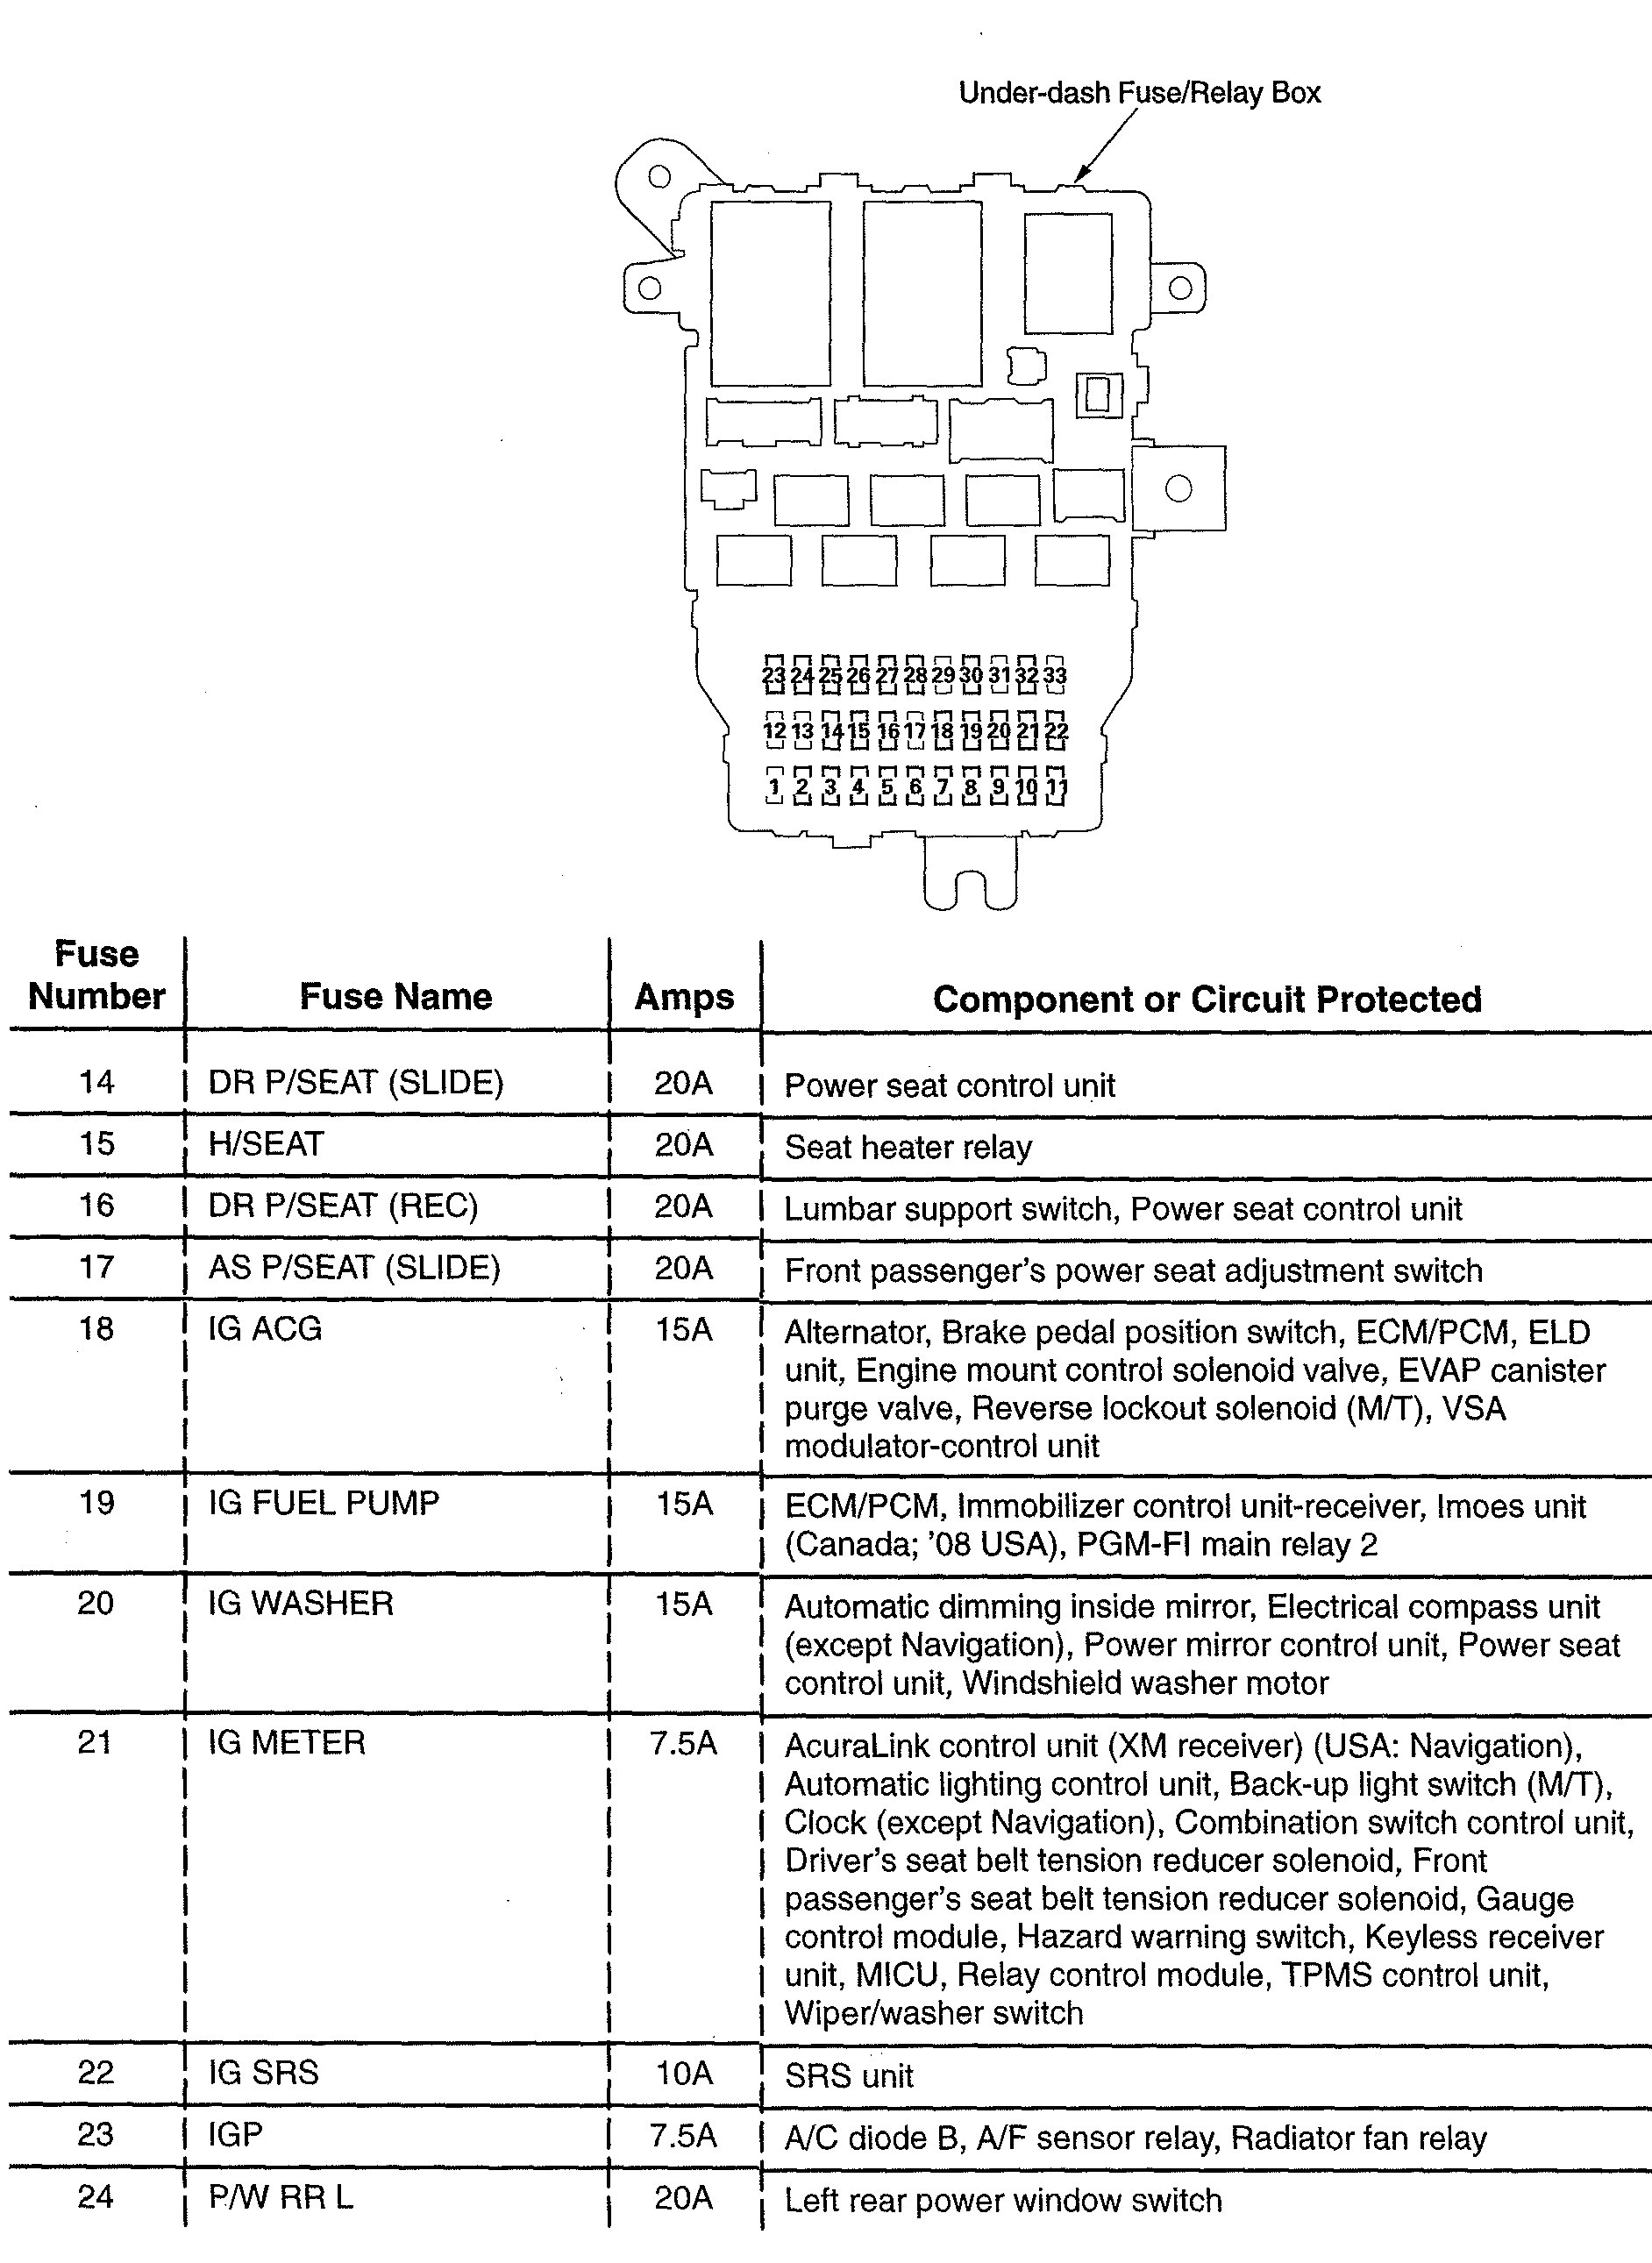 Wiring Diagram Info Fuse Box Diagram Of 2008 Mazda 3